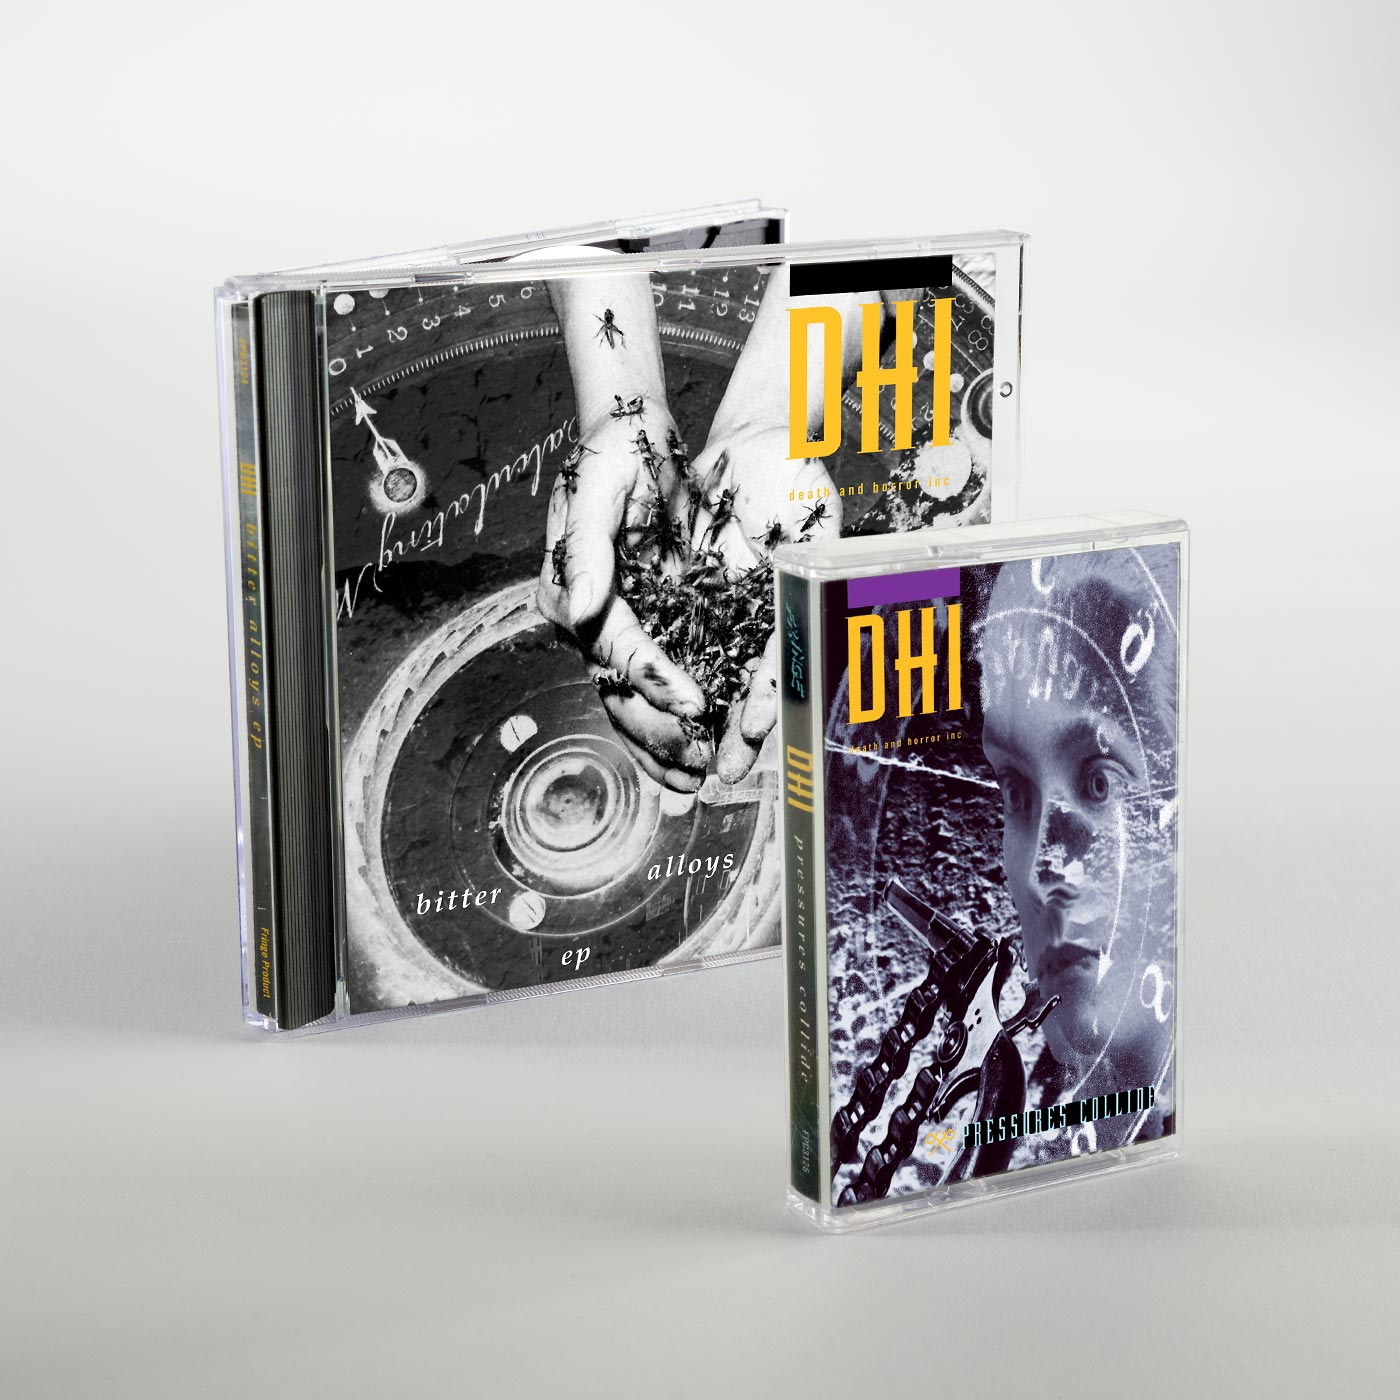 The original Pressures Collide cassette and Bitter Alloys CD packaging, released by DHI (death and horror inc) in 1994 and 1993 respectively.